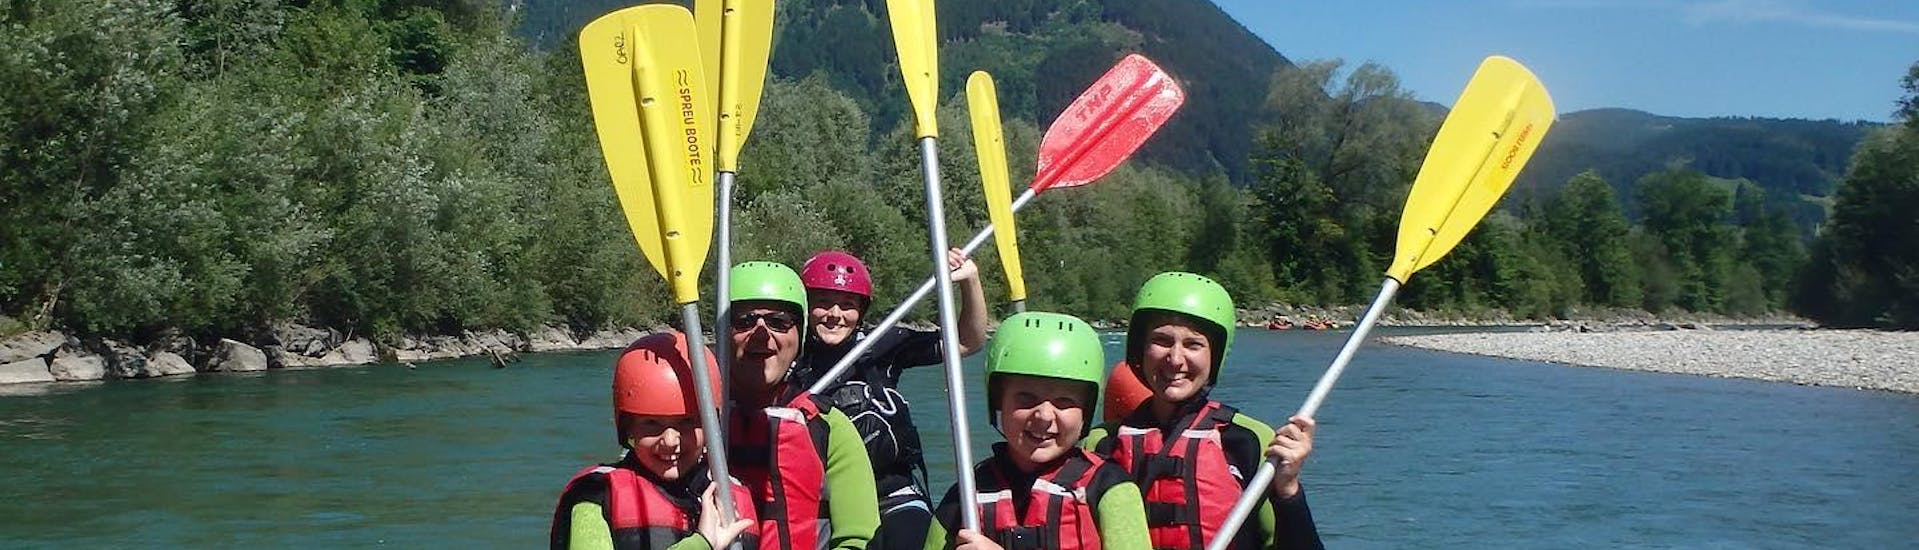 Rafting for Families - Iller